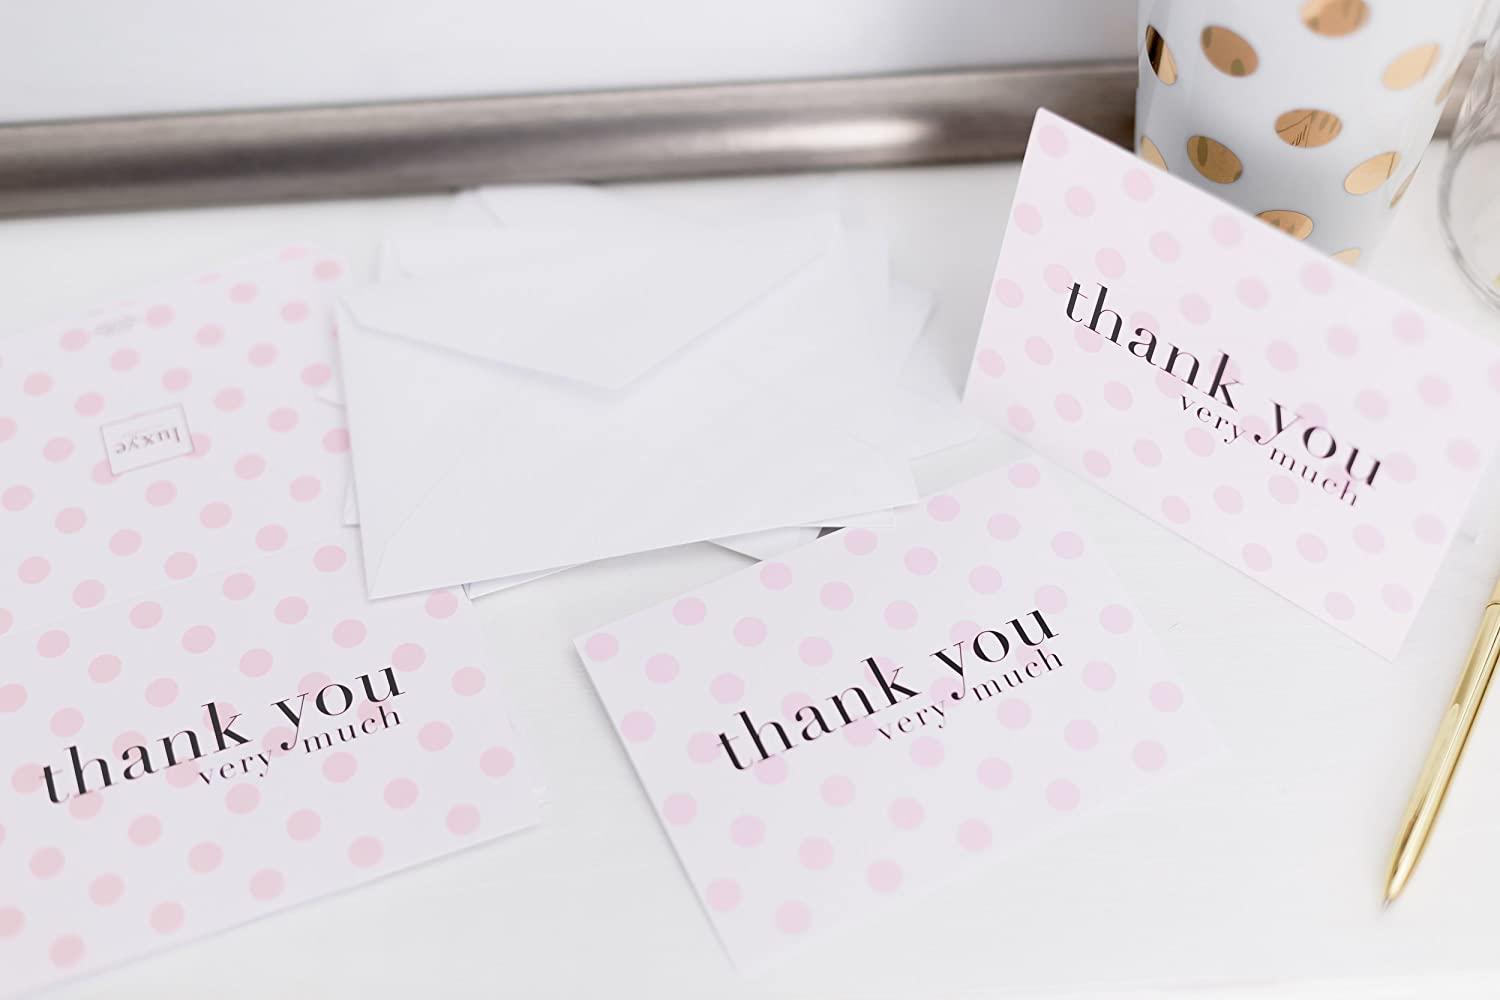 com purple polka dot thank you cards 36 lavender blank notes note cards with 36 envelopes